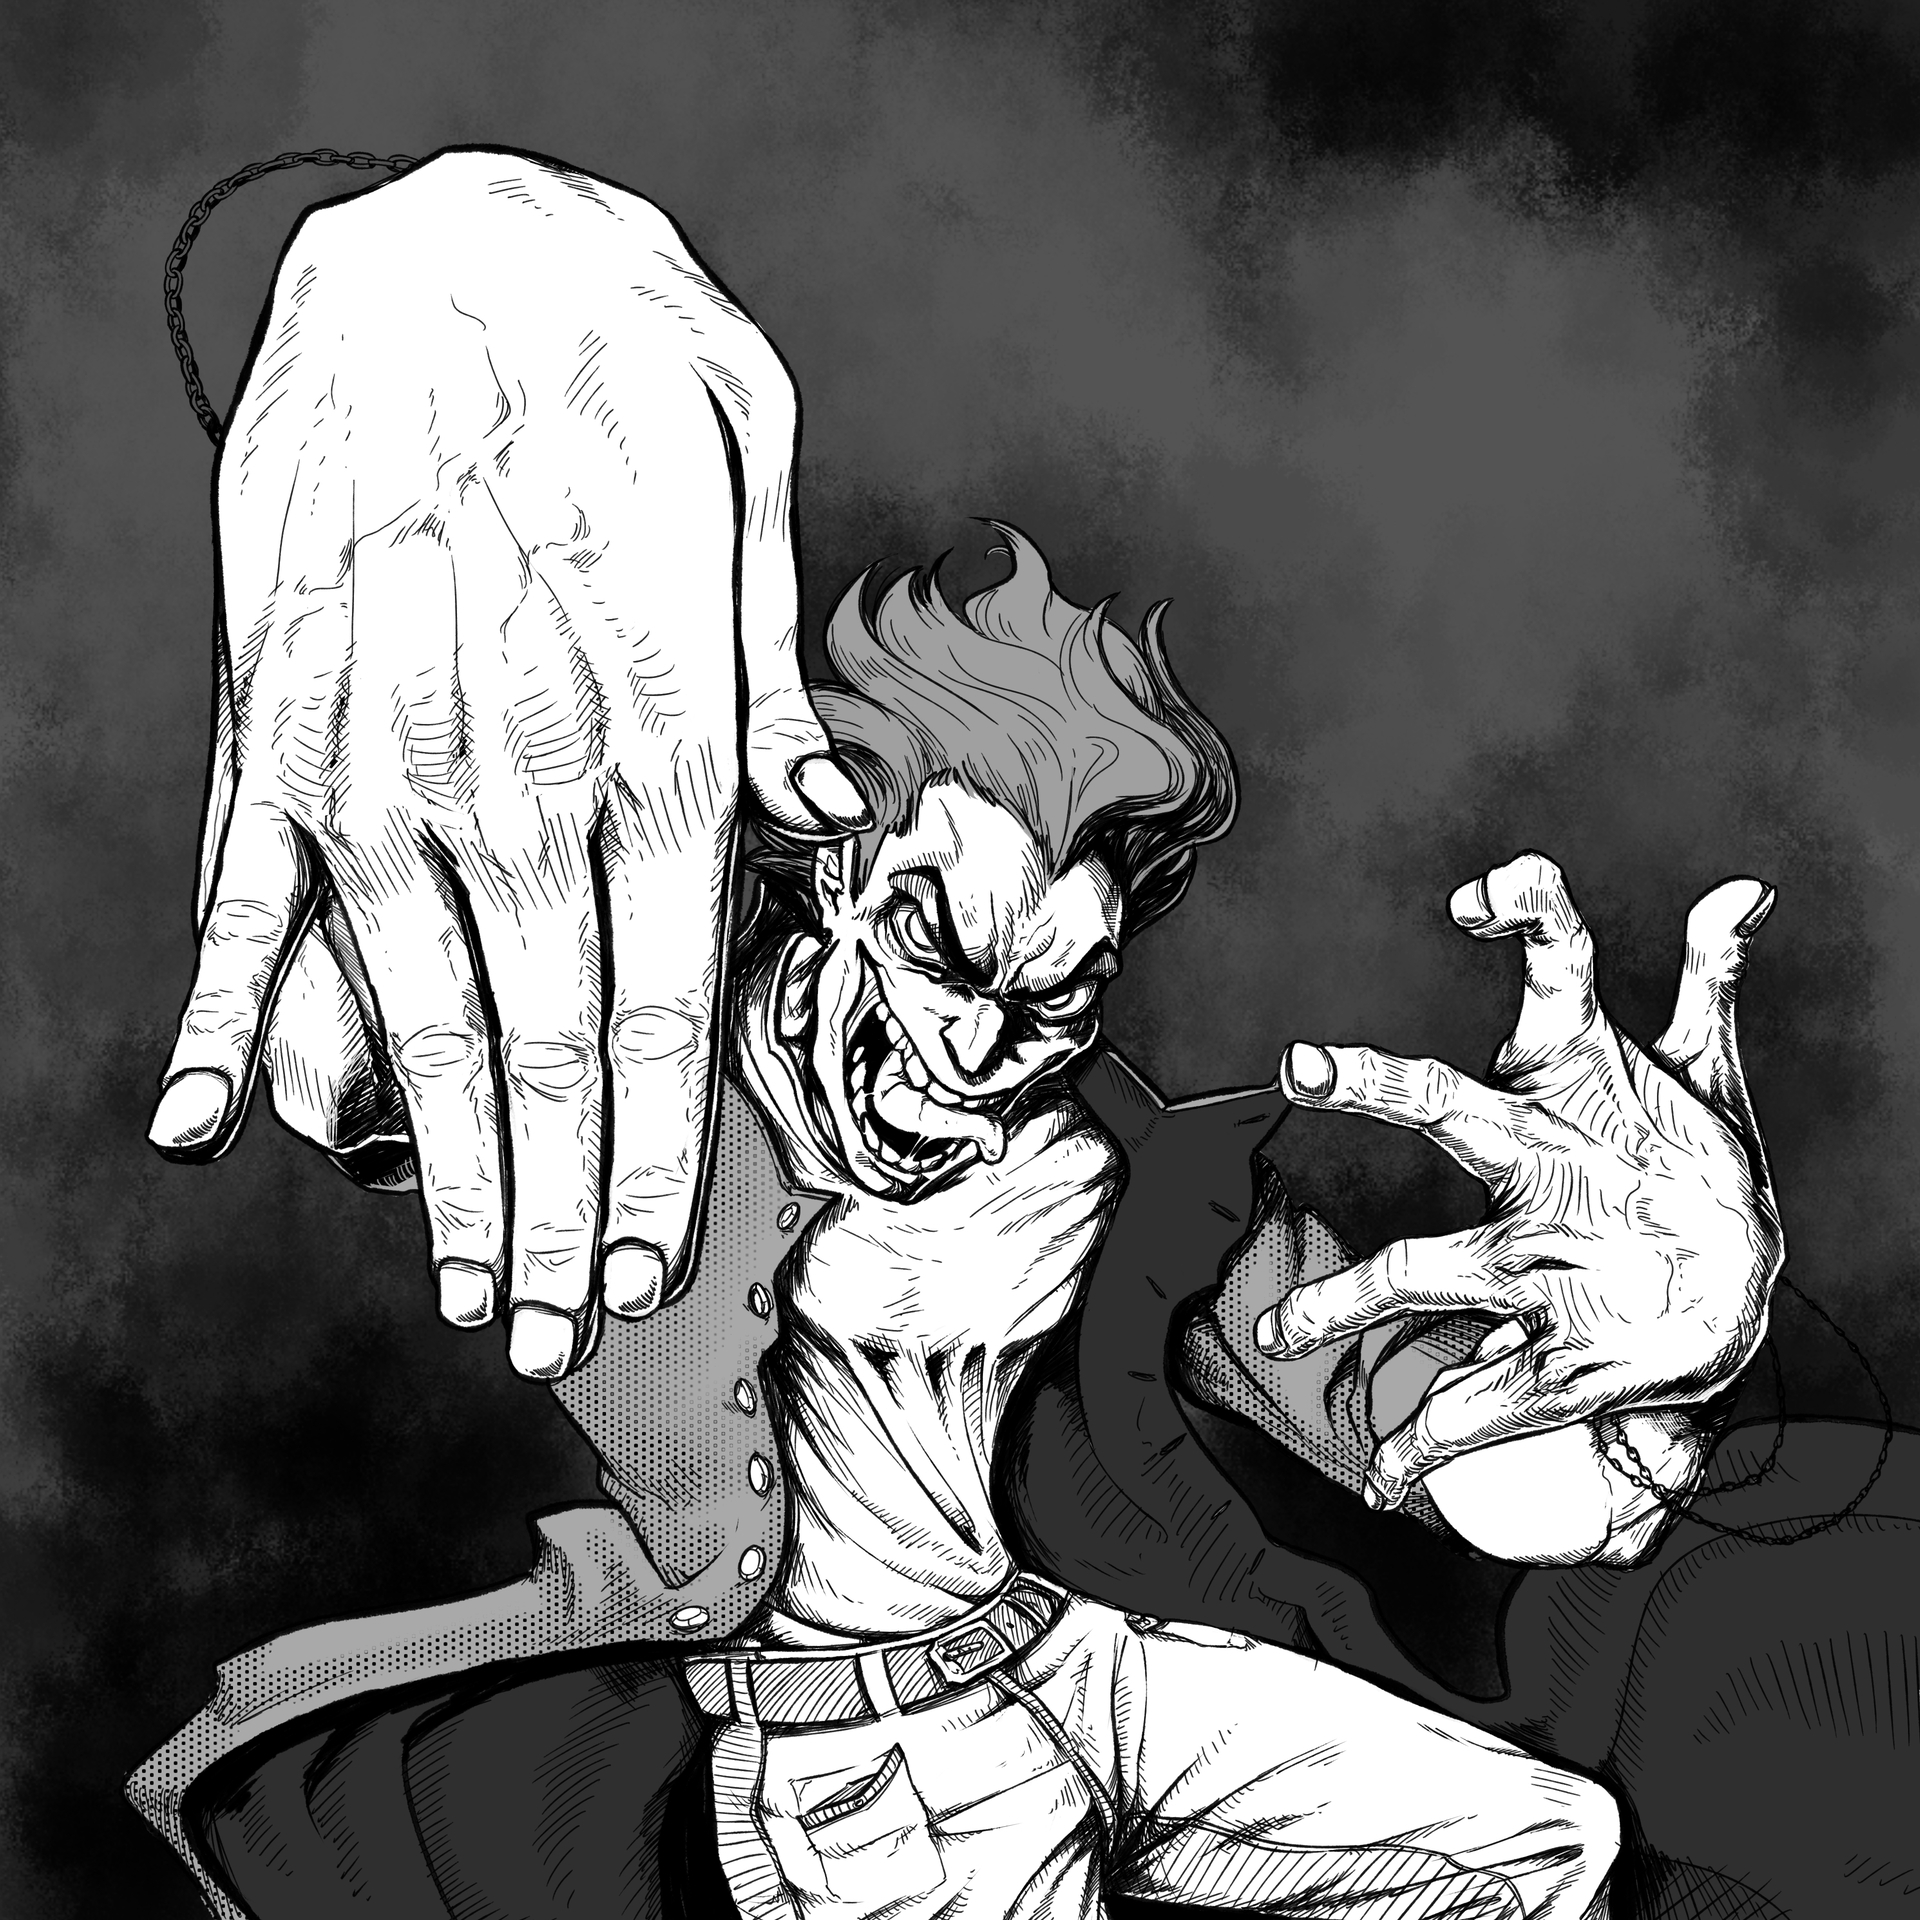 Man with two hands